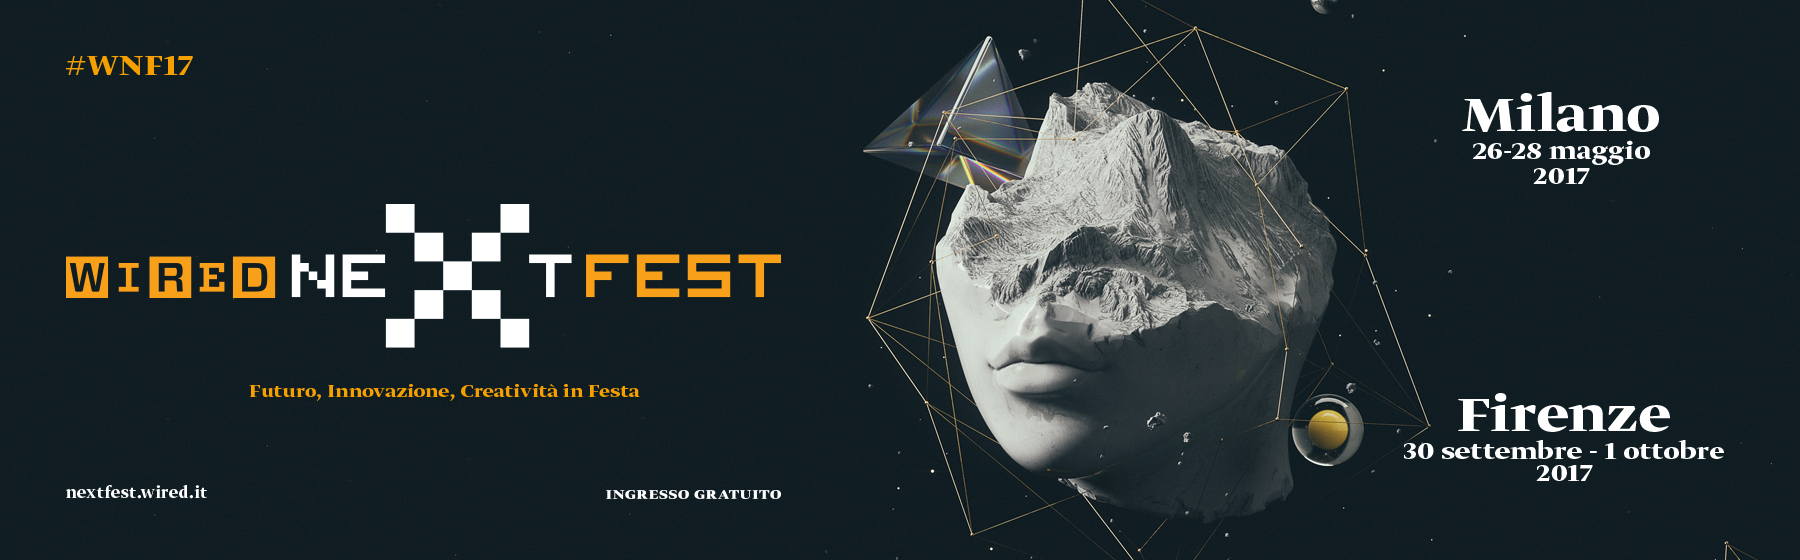 Al Wired Next Fest una giornata sull'Intelligenza Artificiale